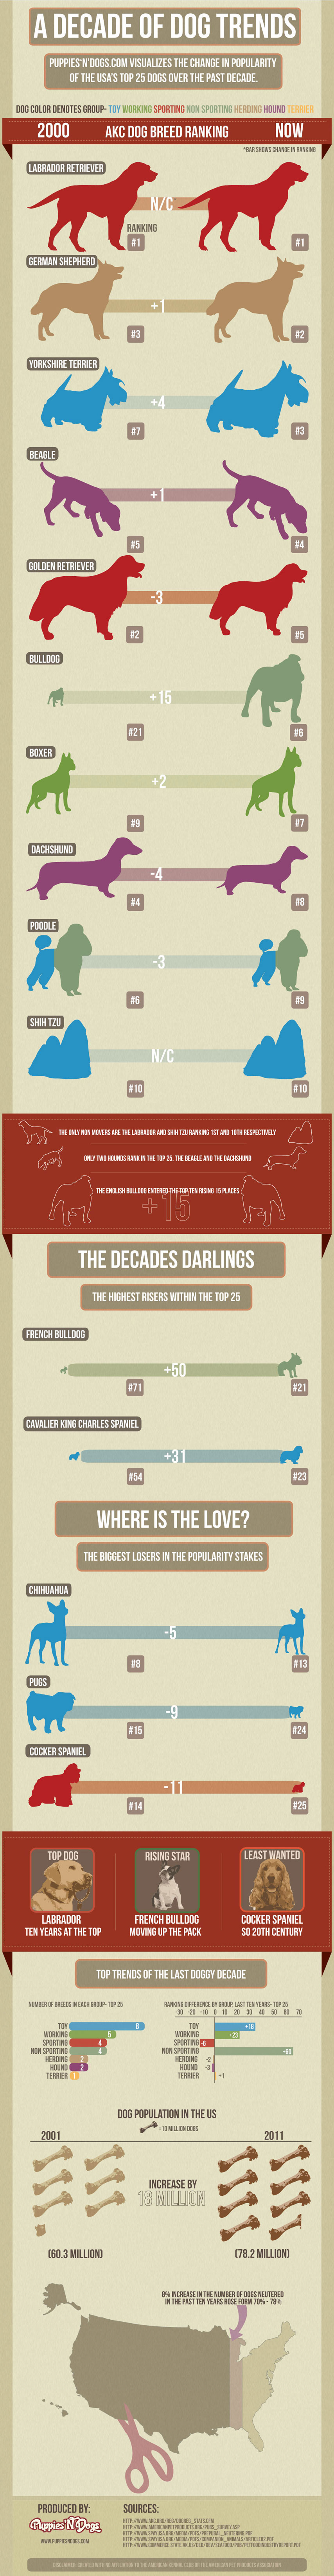 Most Popular Dog Breeds - Top 10 [ Infographic ]